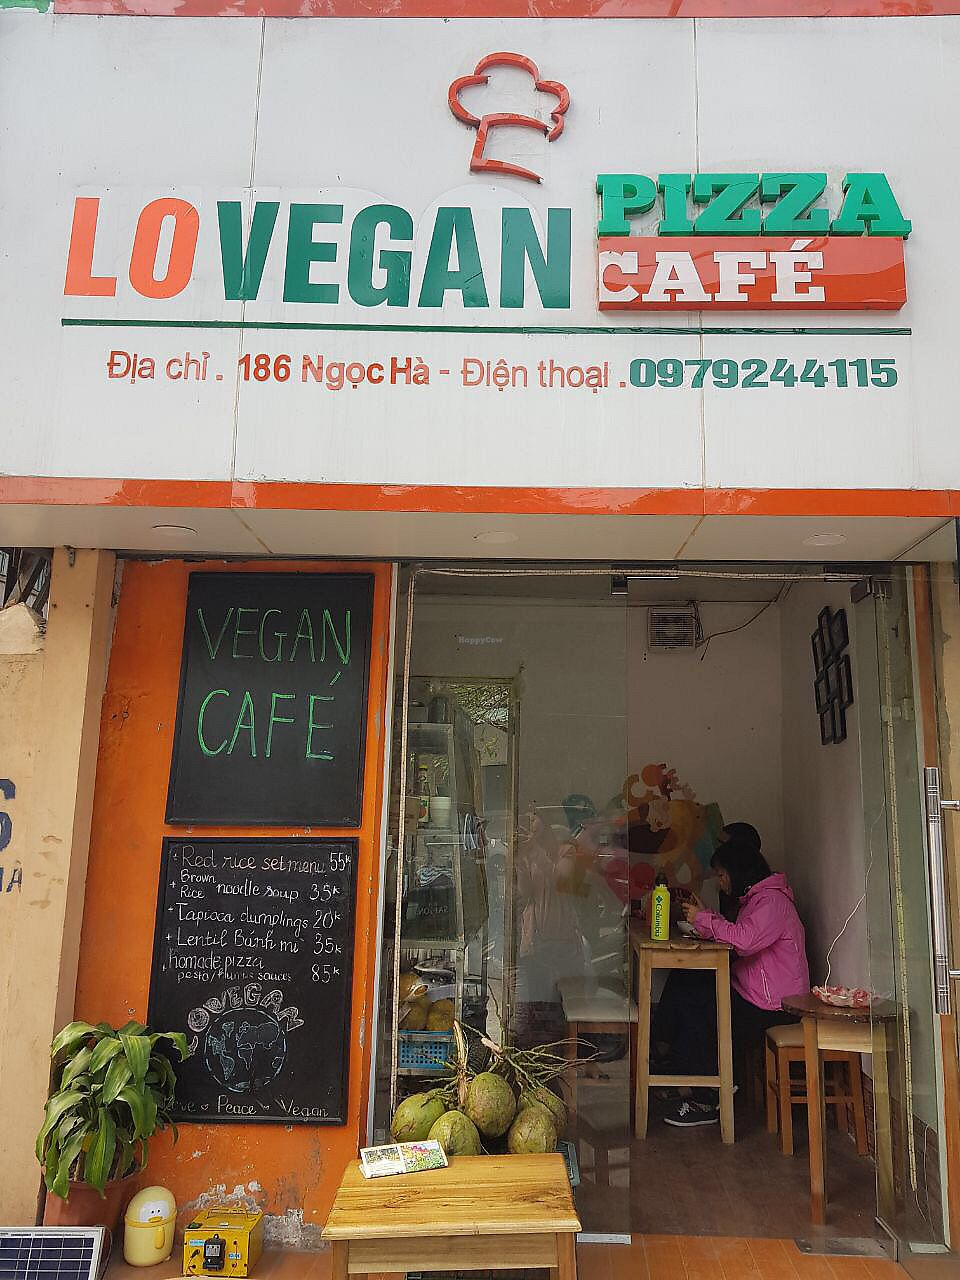 "Photo of Lovegan  by <a href=""/members/profile/Subra"">Subra</a> <br/>Small vegan cafe with awesome food <br/> December 26, 2017  - <a href='/contact/abuse/image/104415/339110'>Report</a>"